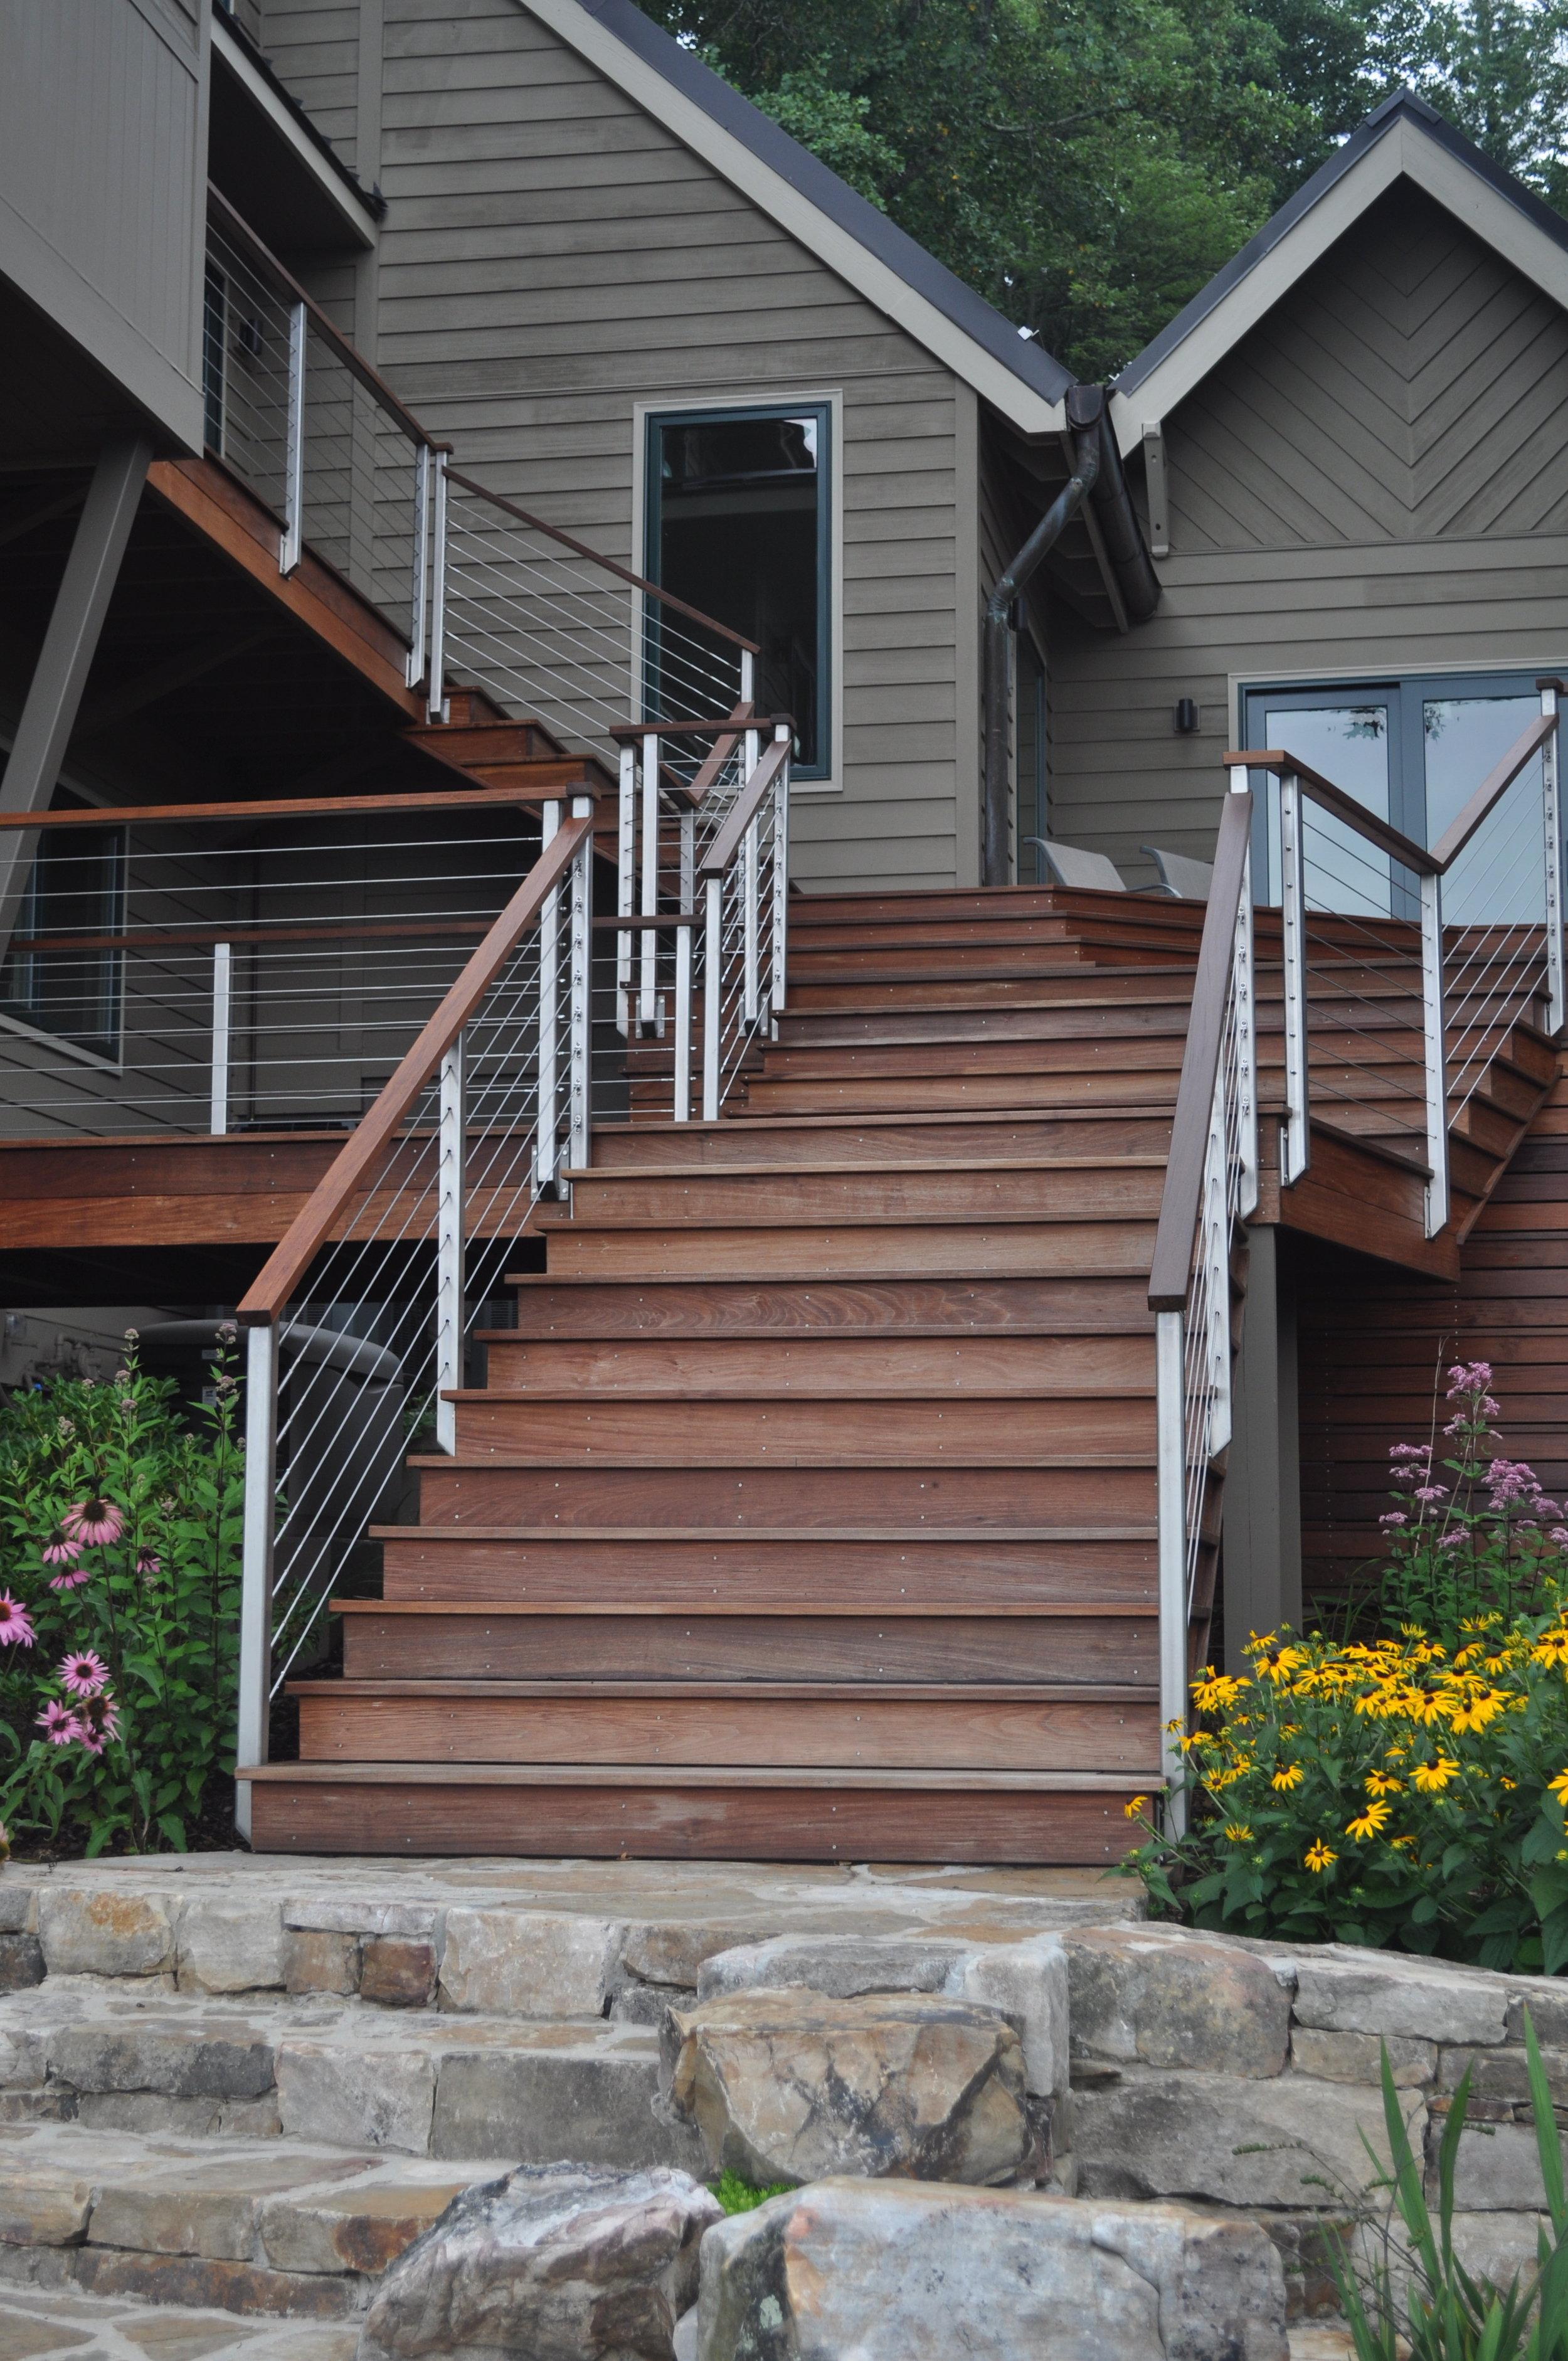 Boone/Jamison Residence, Ipe deck with stainless posts, stainless cable, and Ipe top rail.